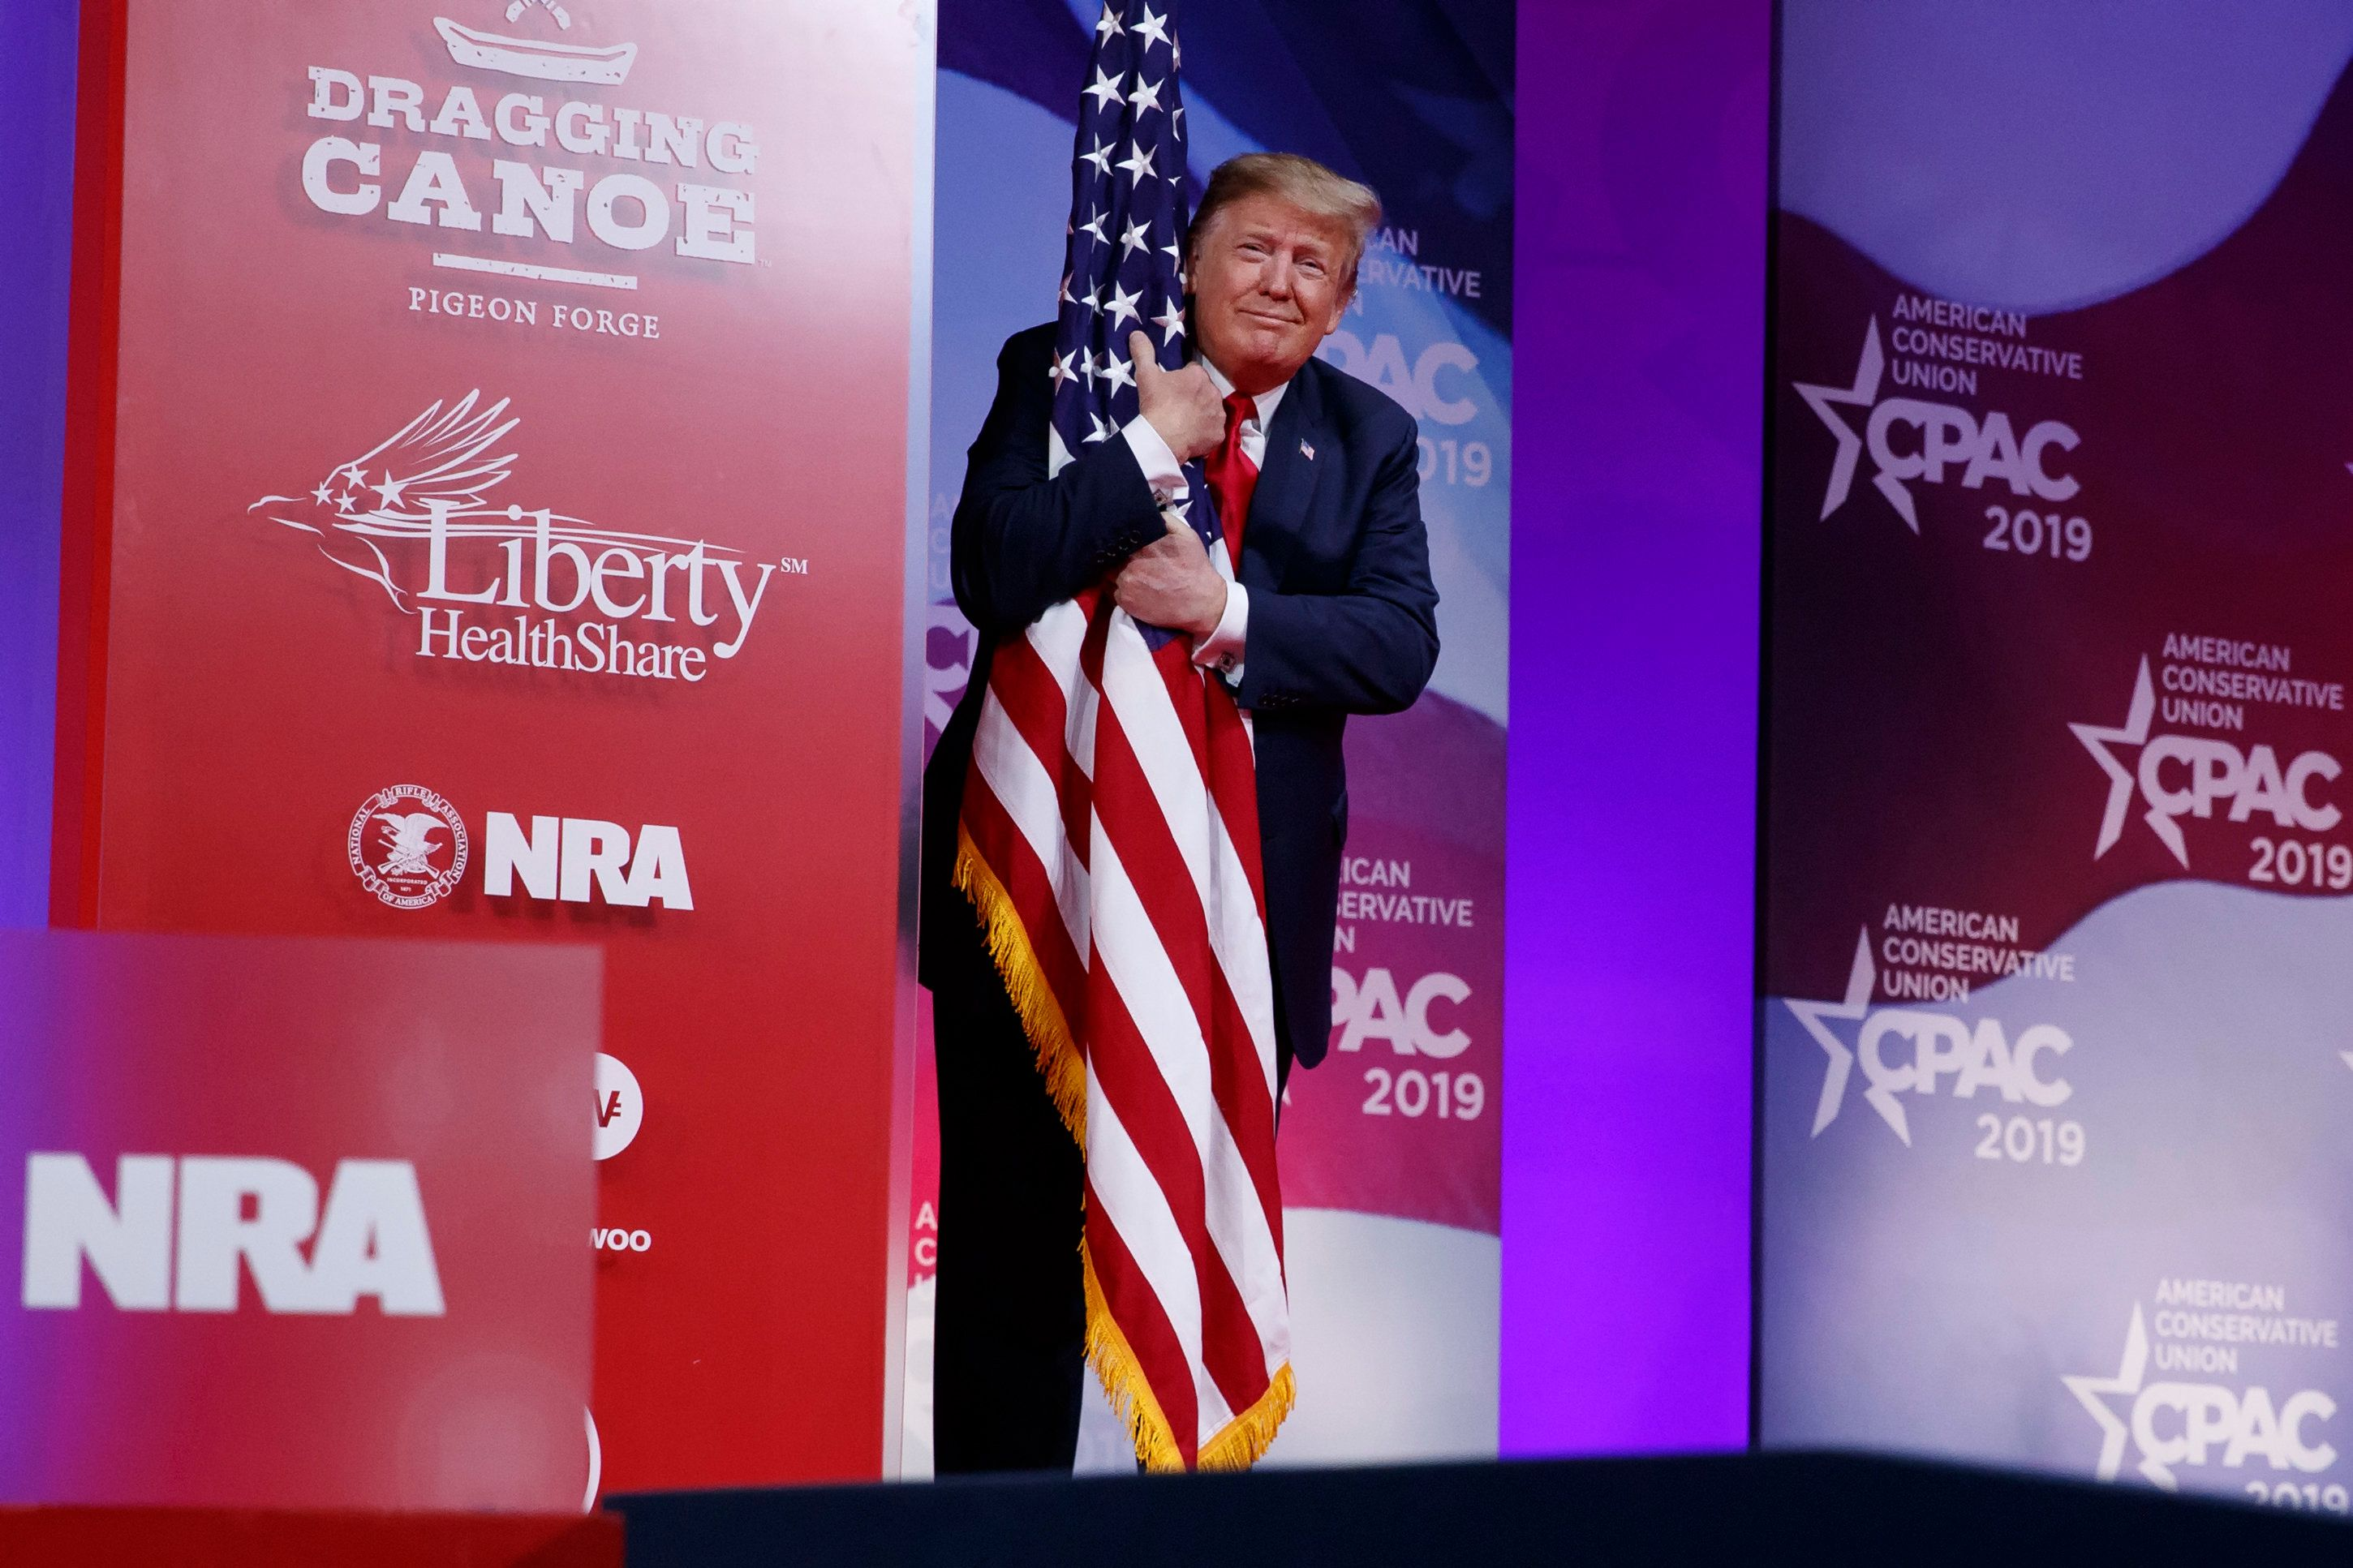 President Donald Trump hugs the American flag as he arrives to speak at Conservative Political Action Conference, CPAC 2019, in Oxon Hill, Md., Saturday, March 2, 2019. (AP Photo/Carolyn Kaster)